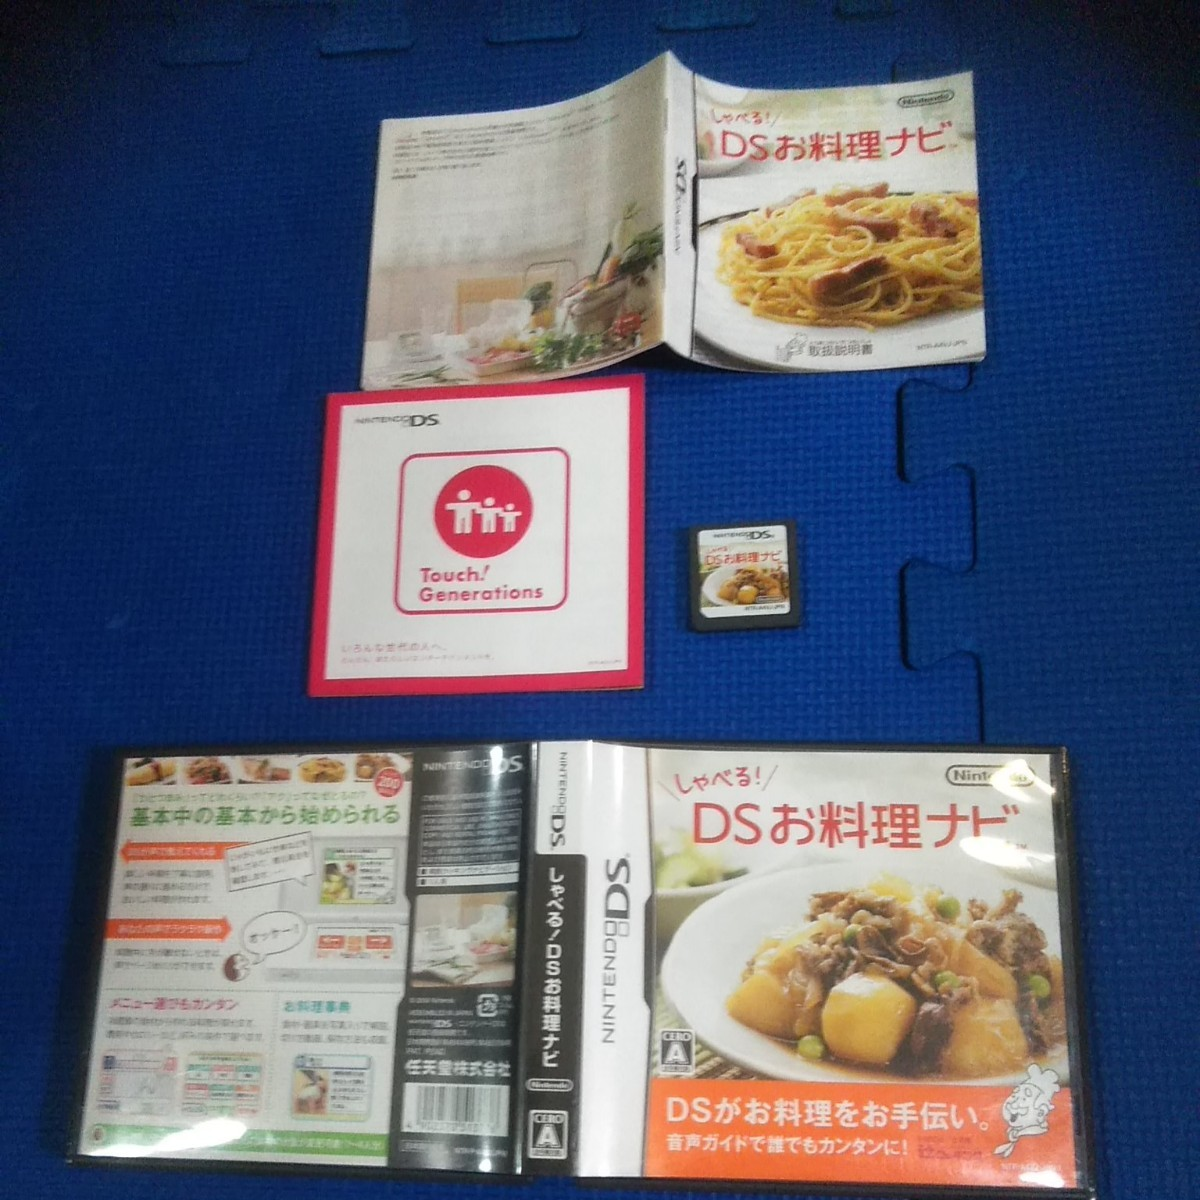 【DS】 お菓子ナビDS + お料理ナビDS